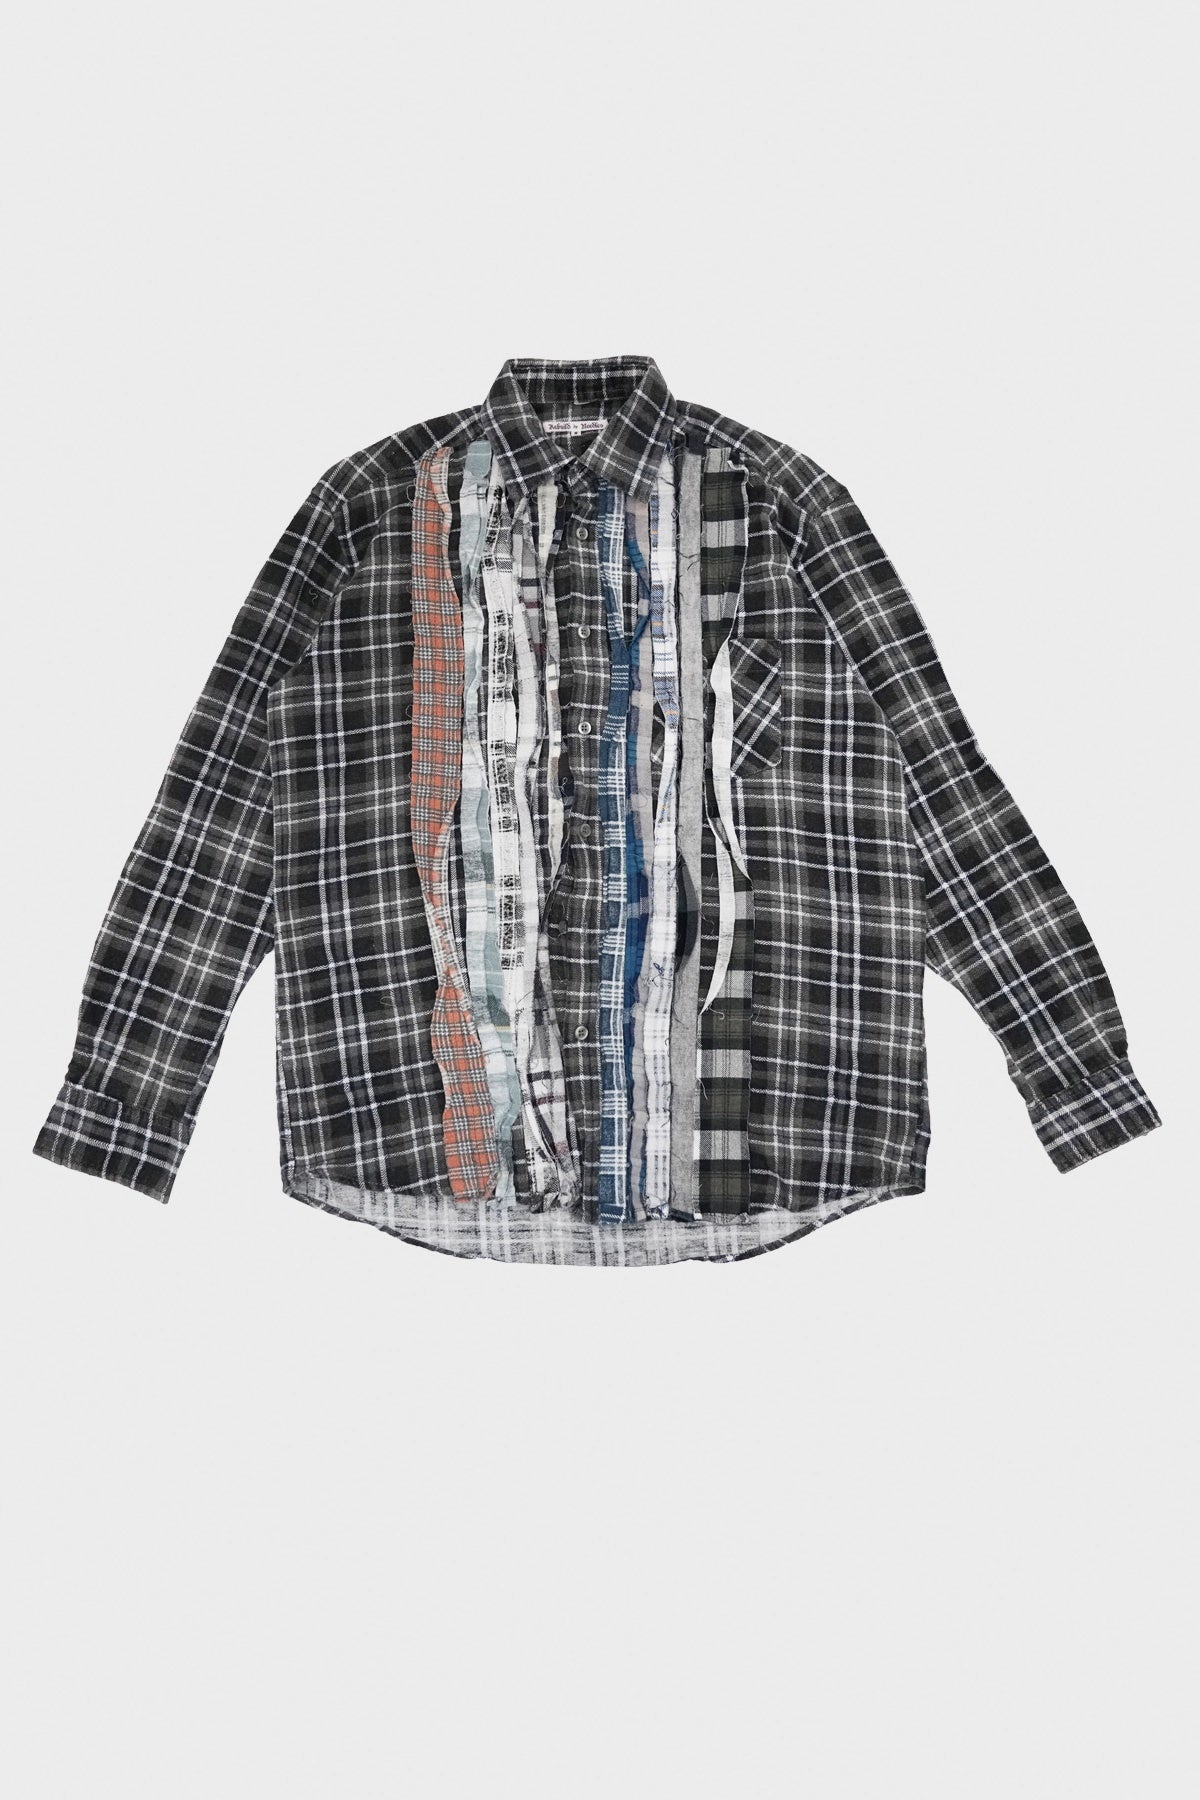 Needles - Ribbon Flannel Shirt - Assorted #2 - Small - Canoe Club